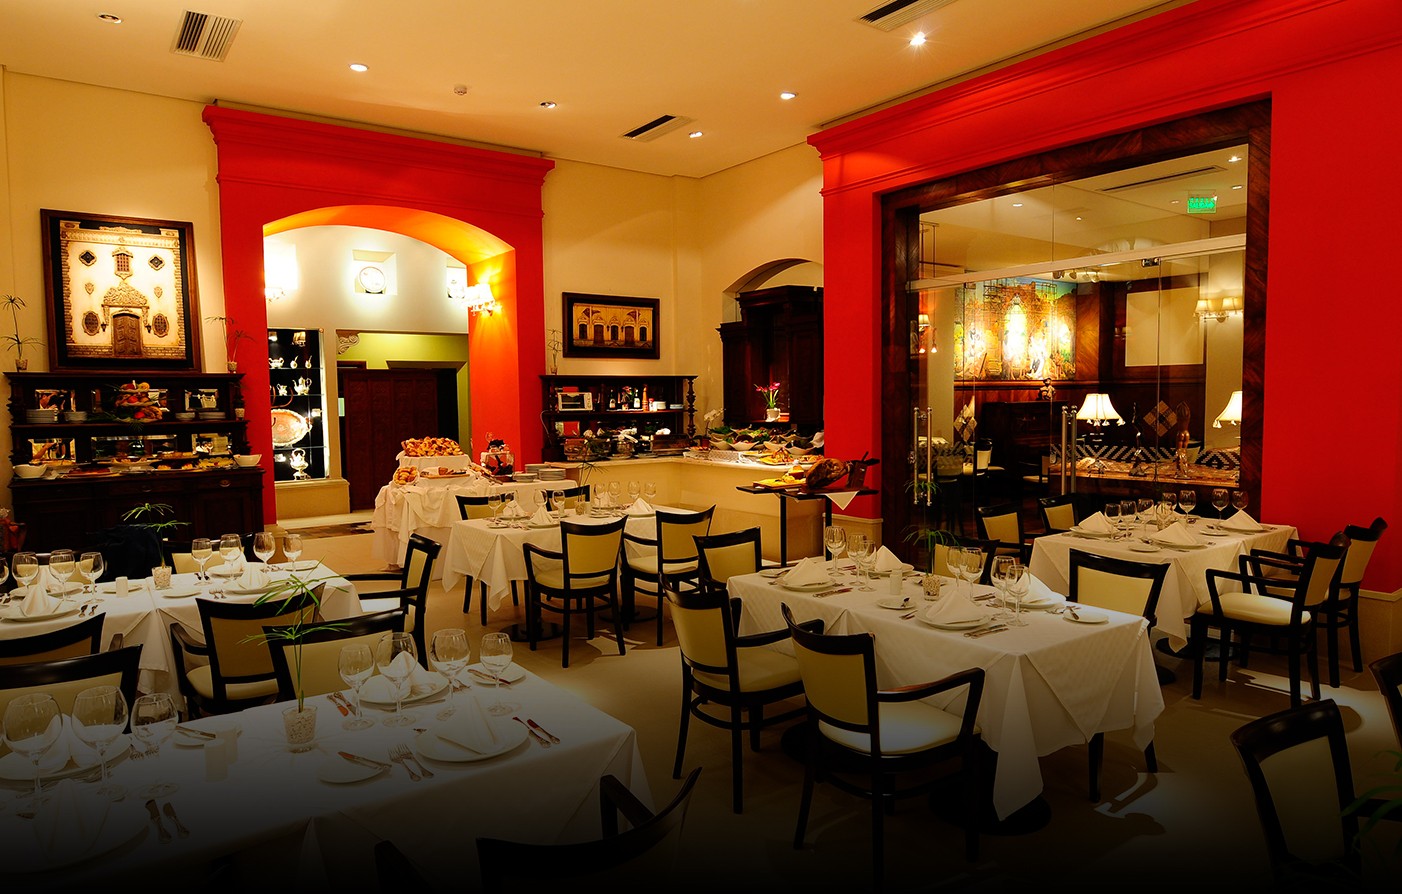 La mision hotel boutique restaurants luxury boutique for Best boutique hotels in la